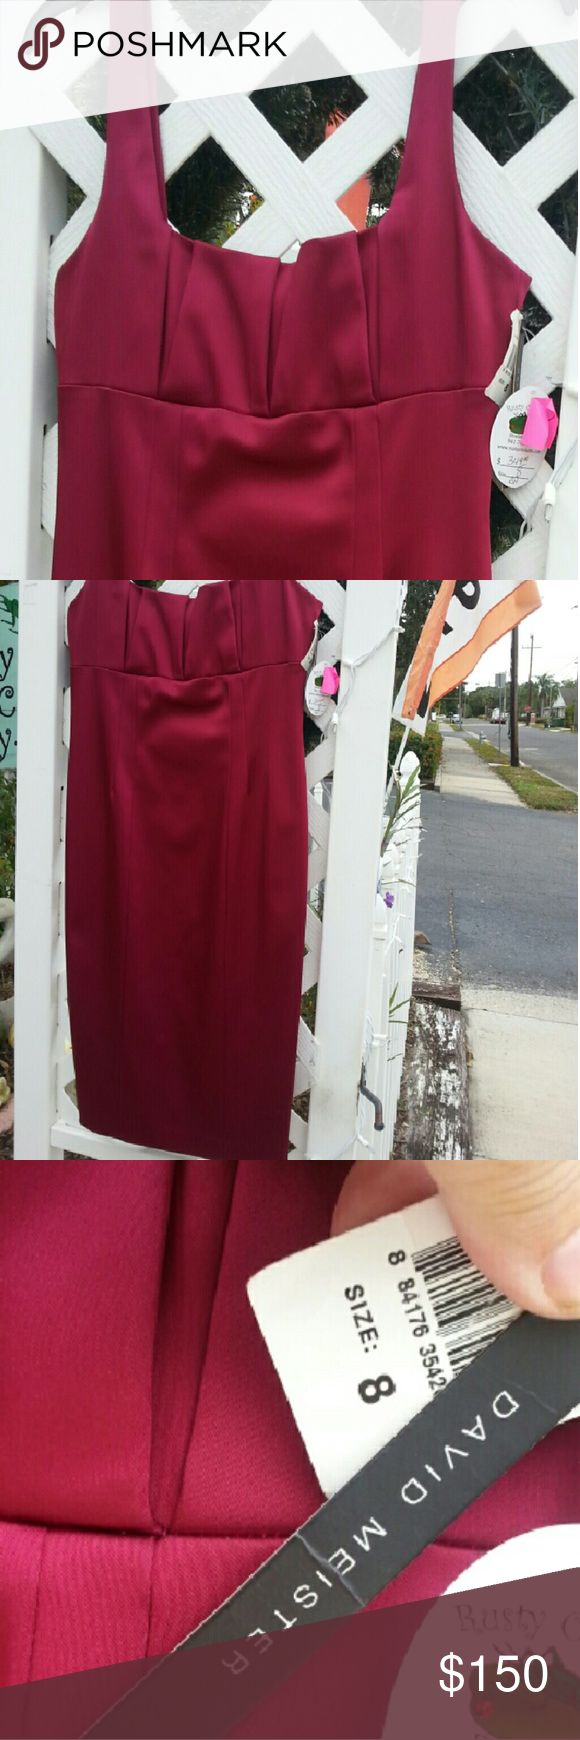 David Meister Cocktail Dress NWT  Form fitting sateen beautiful raspberry dress, perfect for your valentine. David Meister Dresses Midi